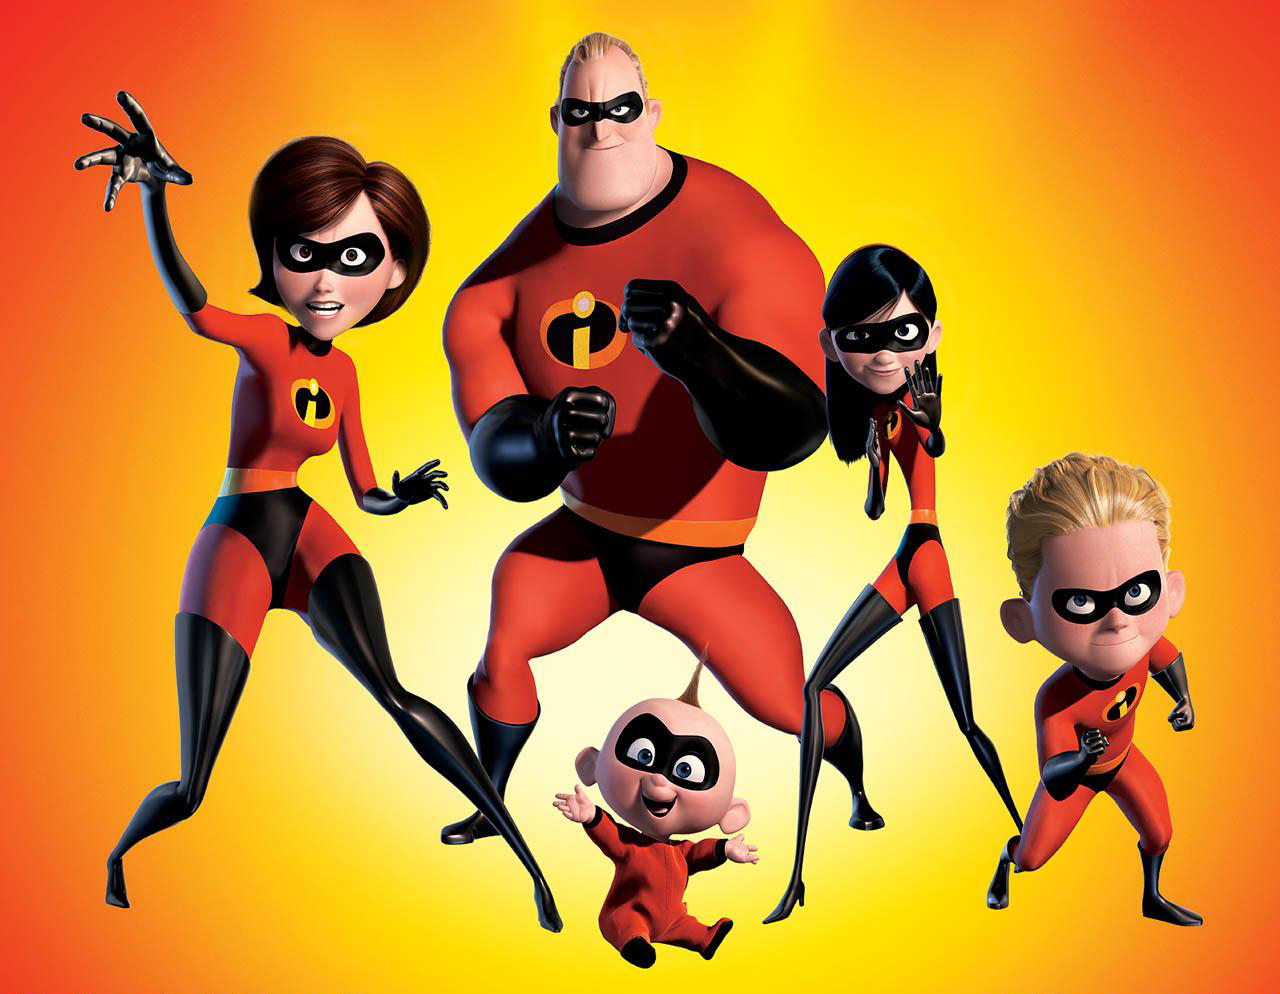 https://i0.wp.com/www.epicdash.com/wp-content/uploads/2014/03/fun-facts-about-the-incredibles.jpg